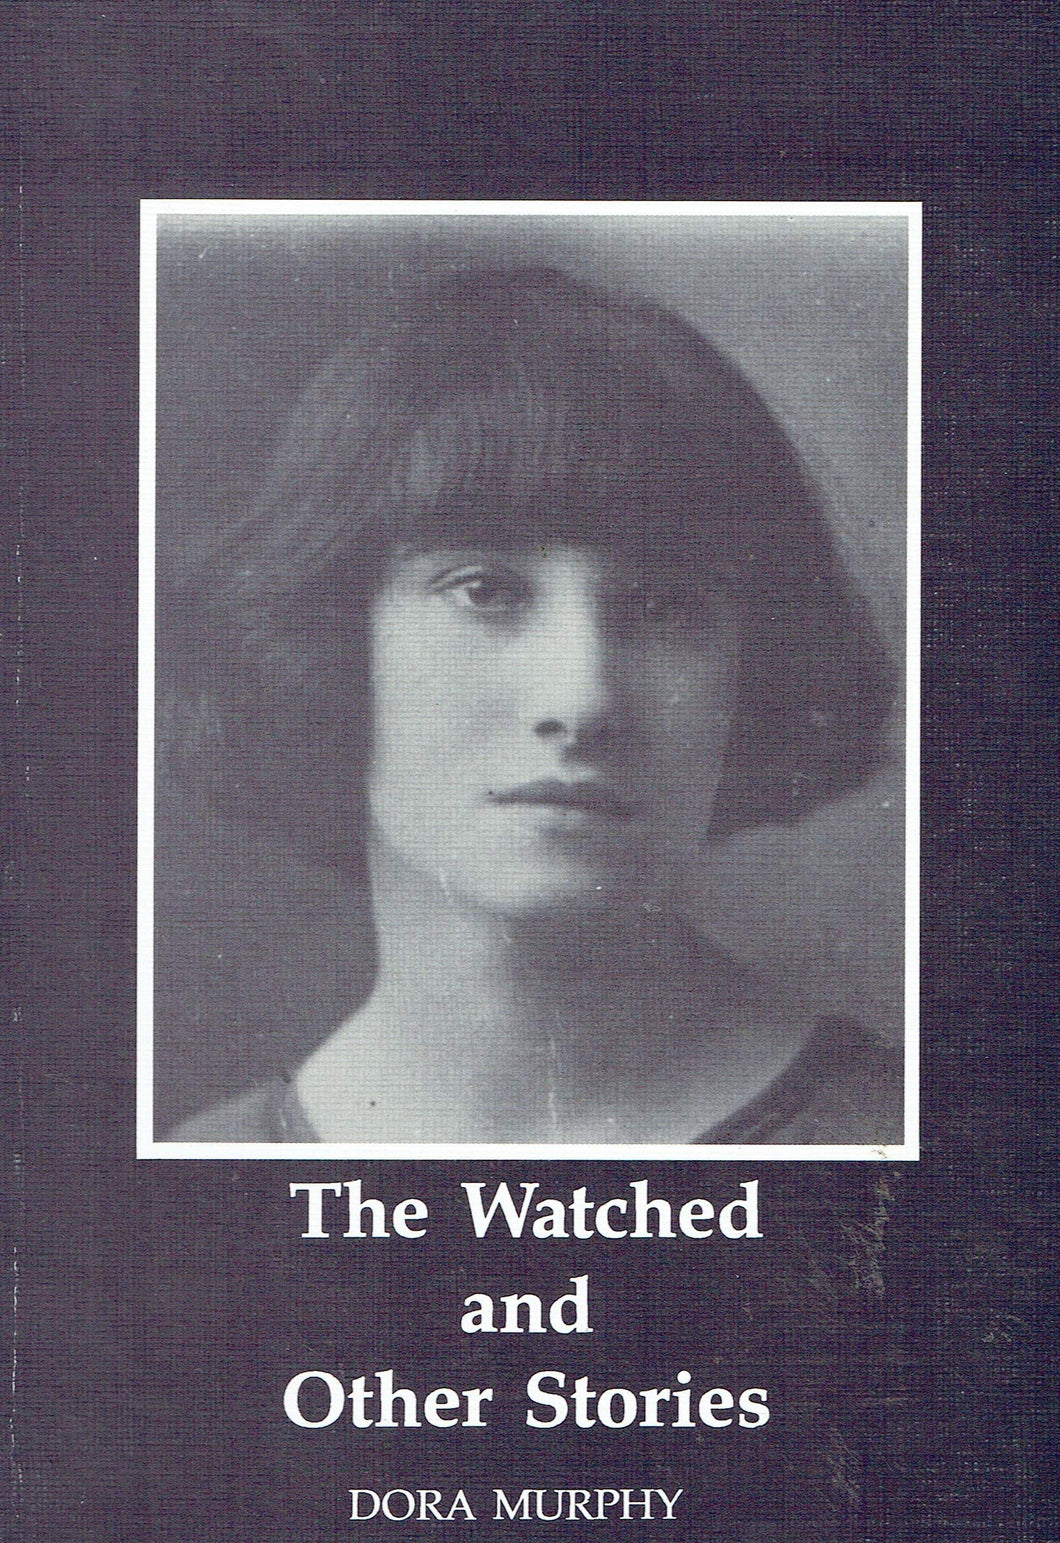 The Watched and Other Stories